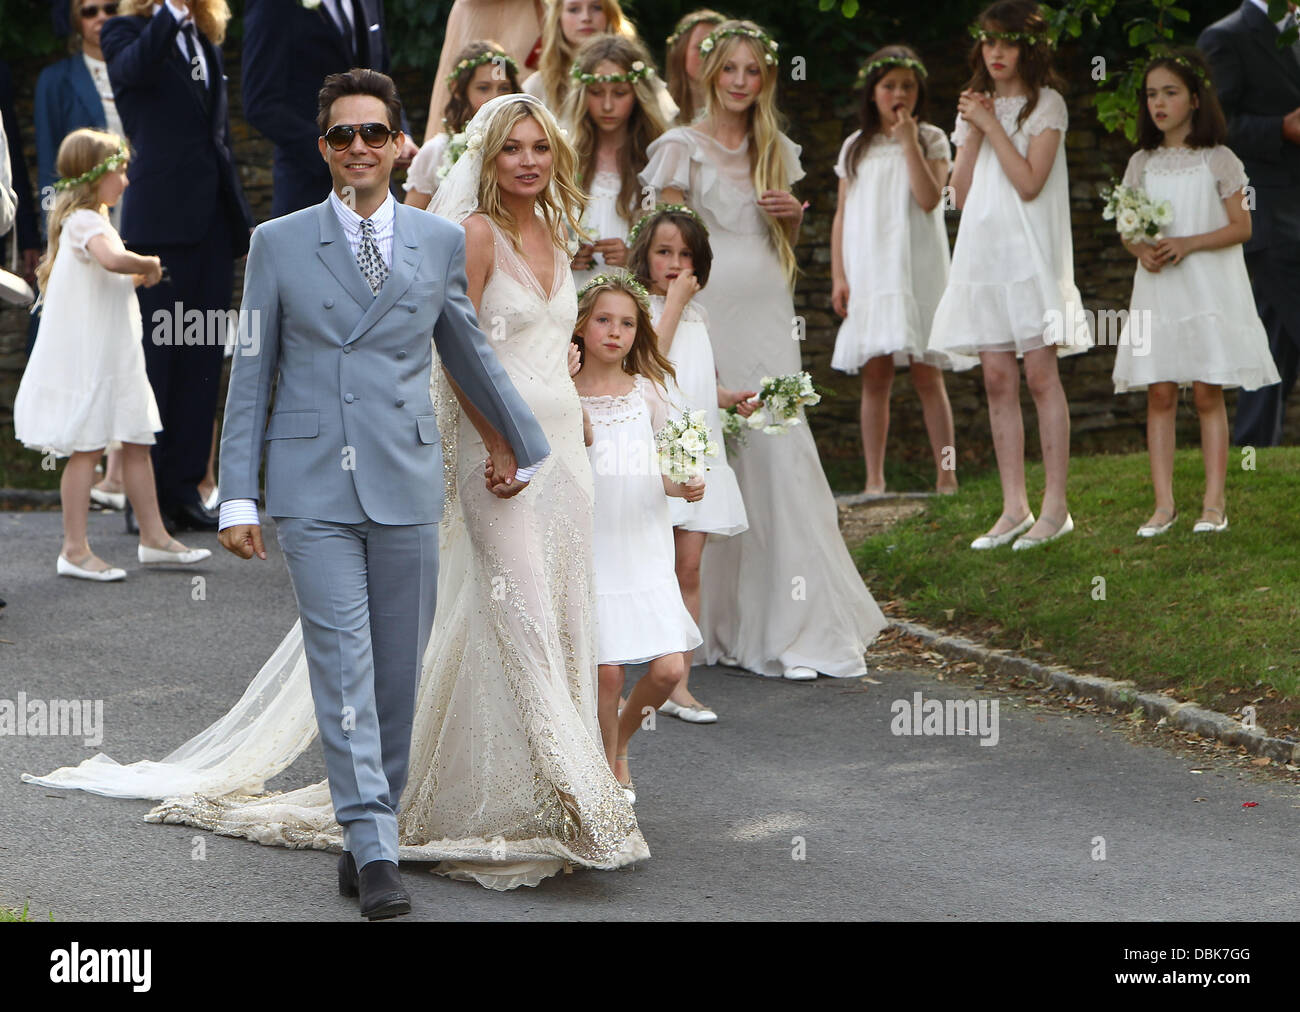 The marriage ceremony of Kate Moss was held in the small old church of St. Margaret 07/02/2011 71